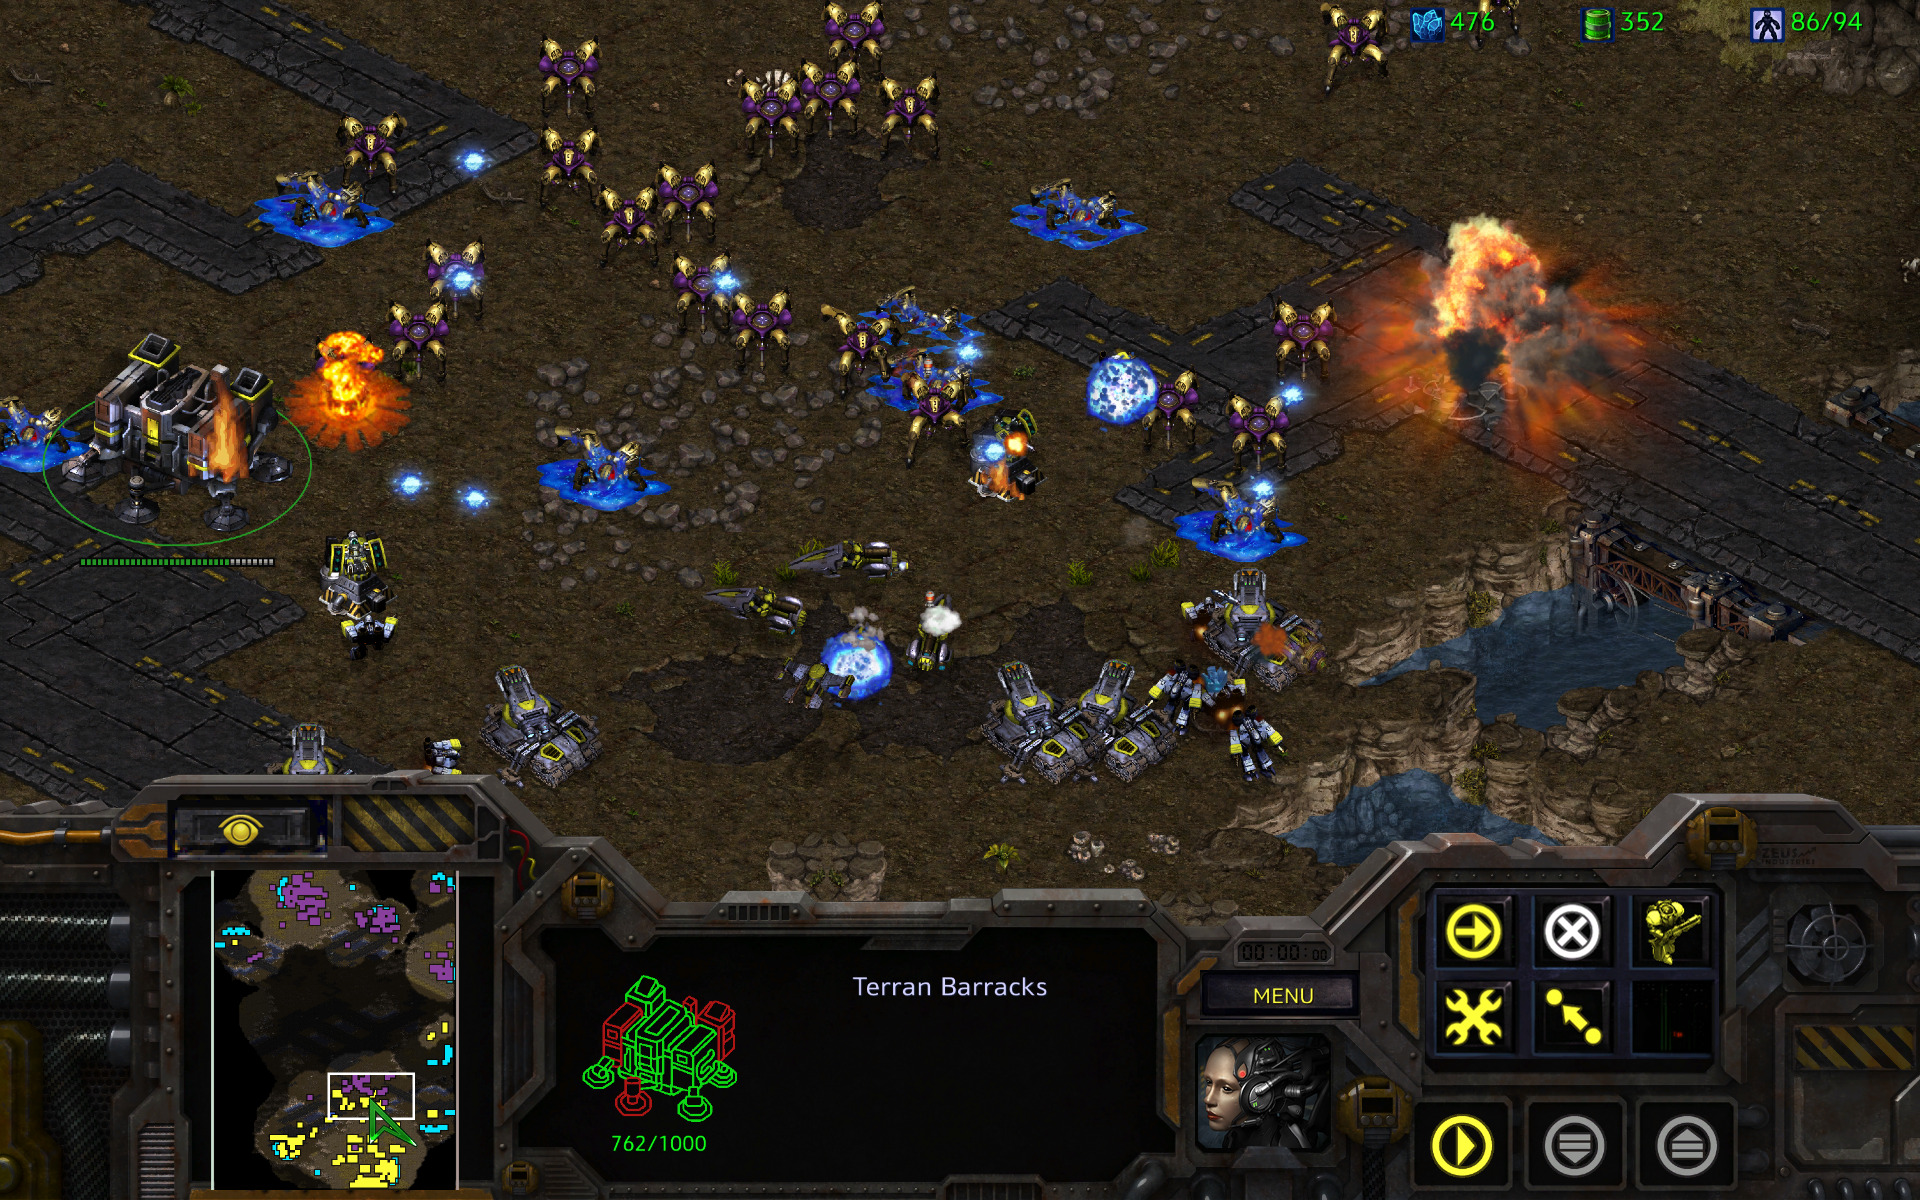 starcraft-remastered-duoc-cong-bo-cho-pc-tin-game-4